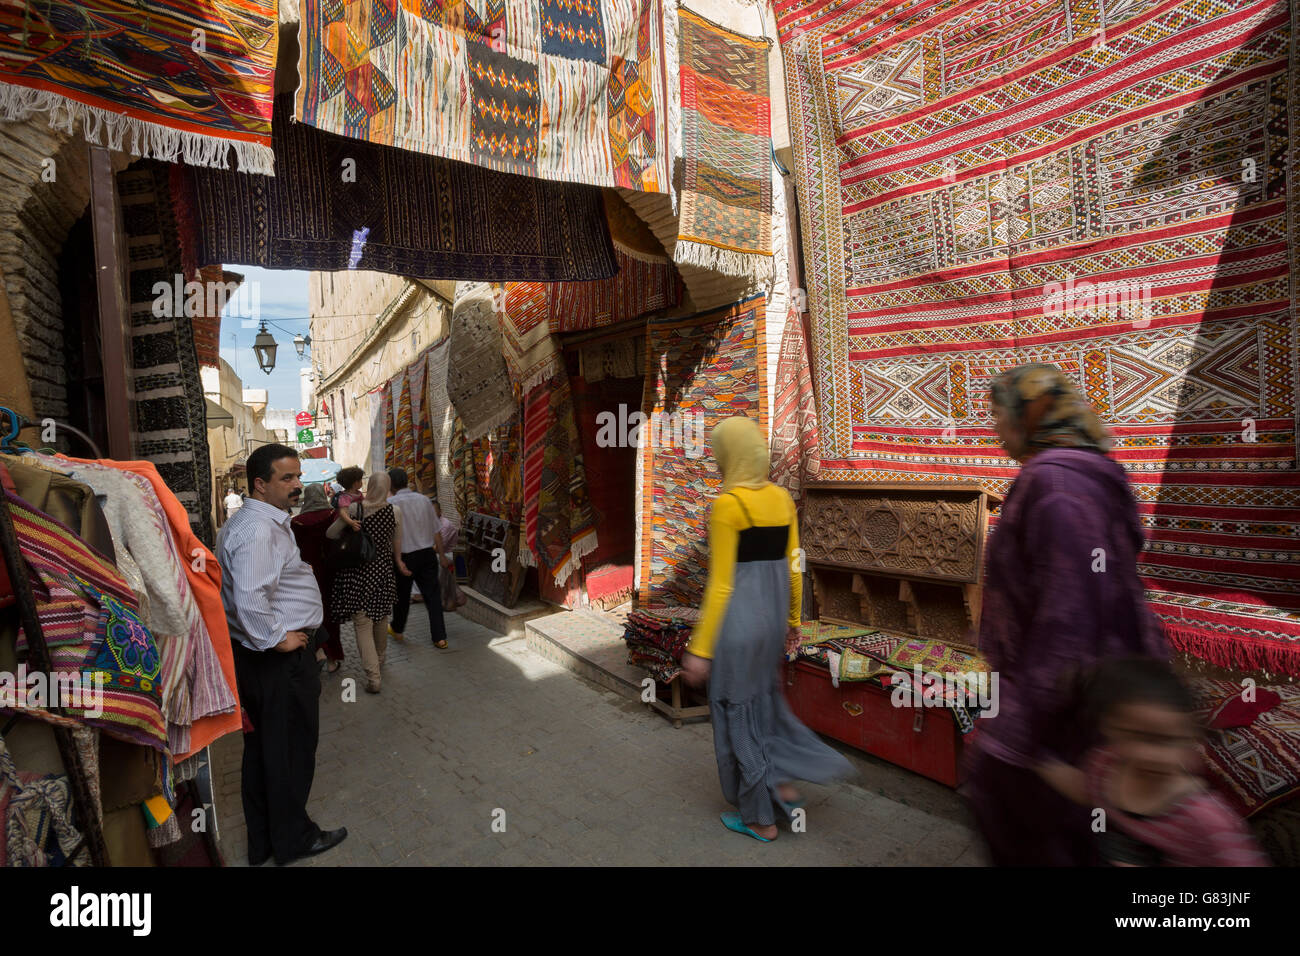 Local residents dash through the rug-lined narrow streets of the Fez Medina in Morocco. - Stock Image